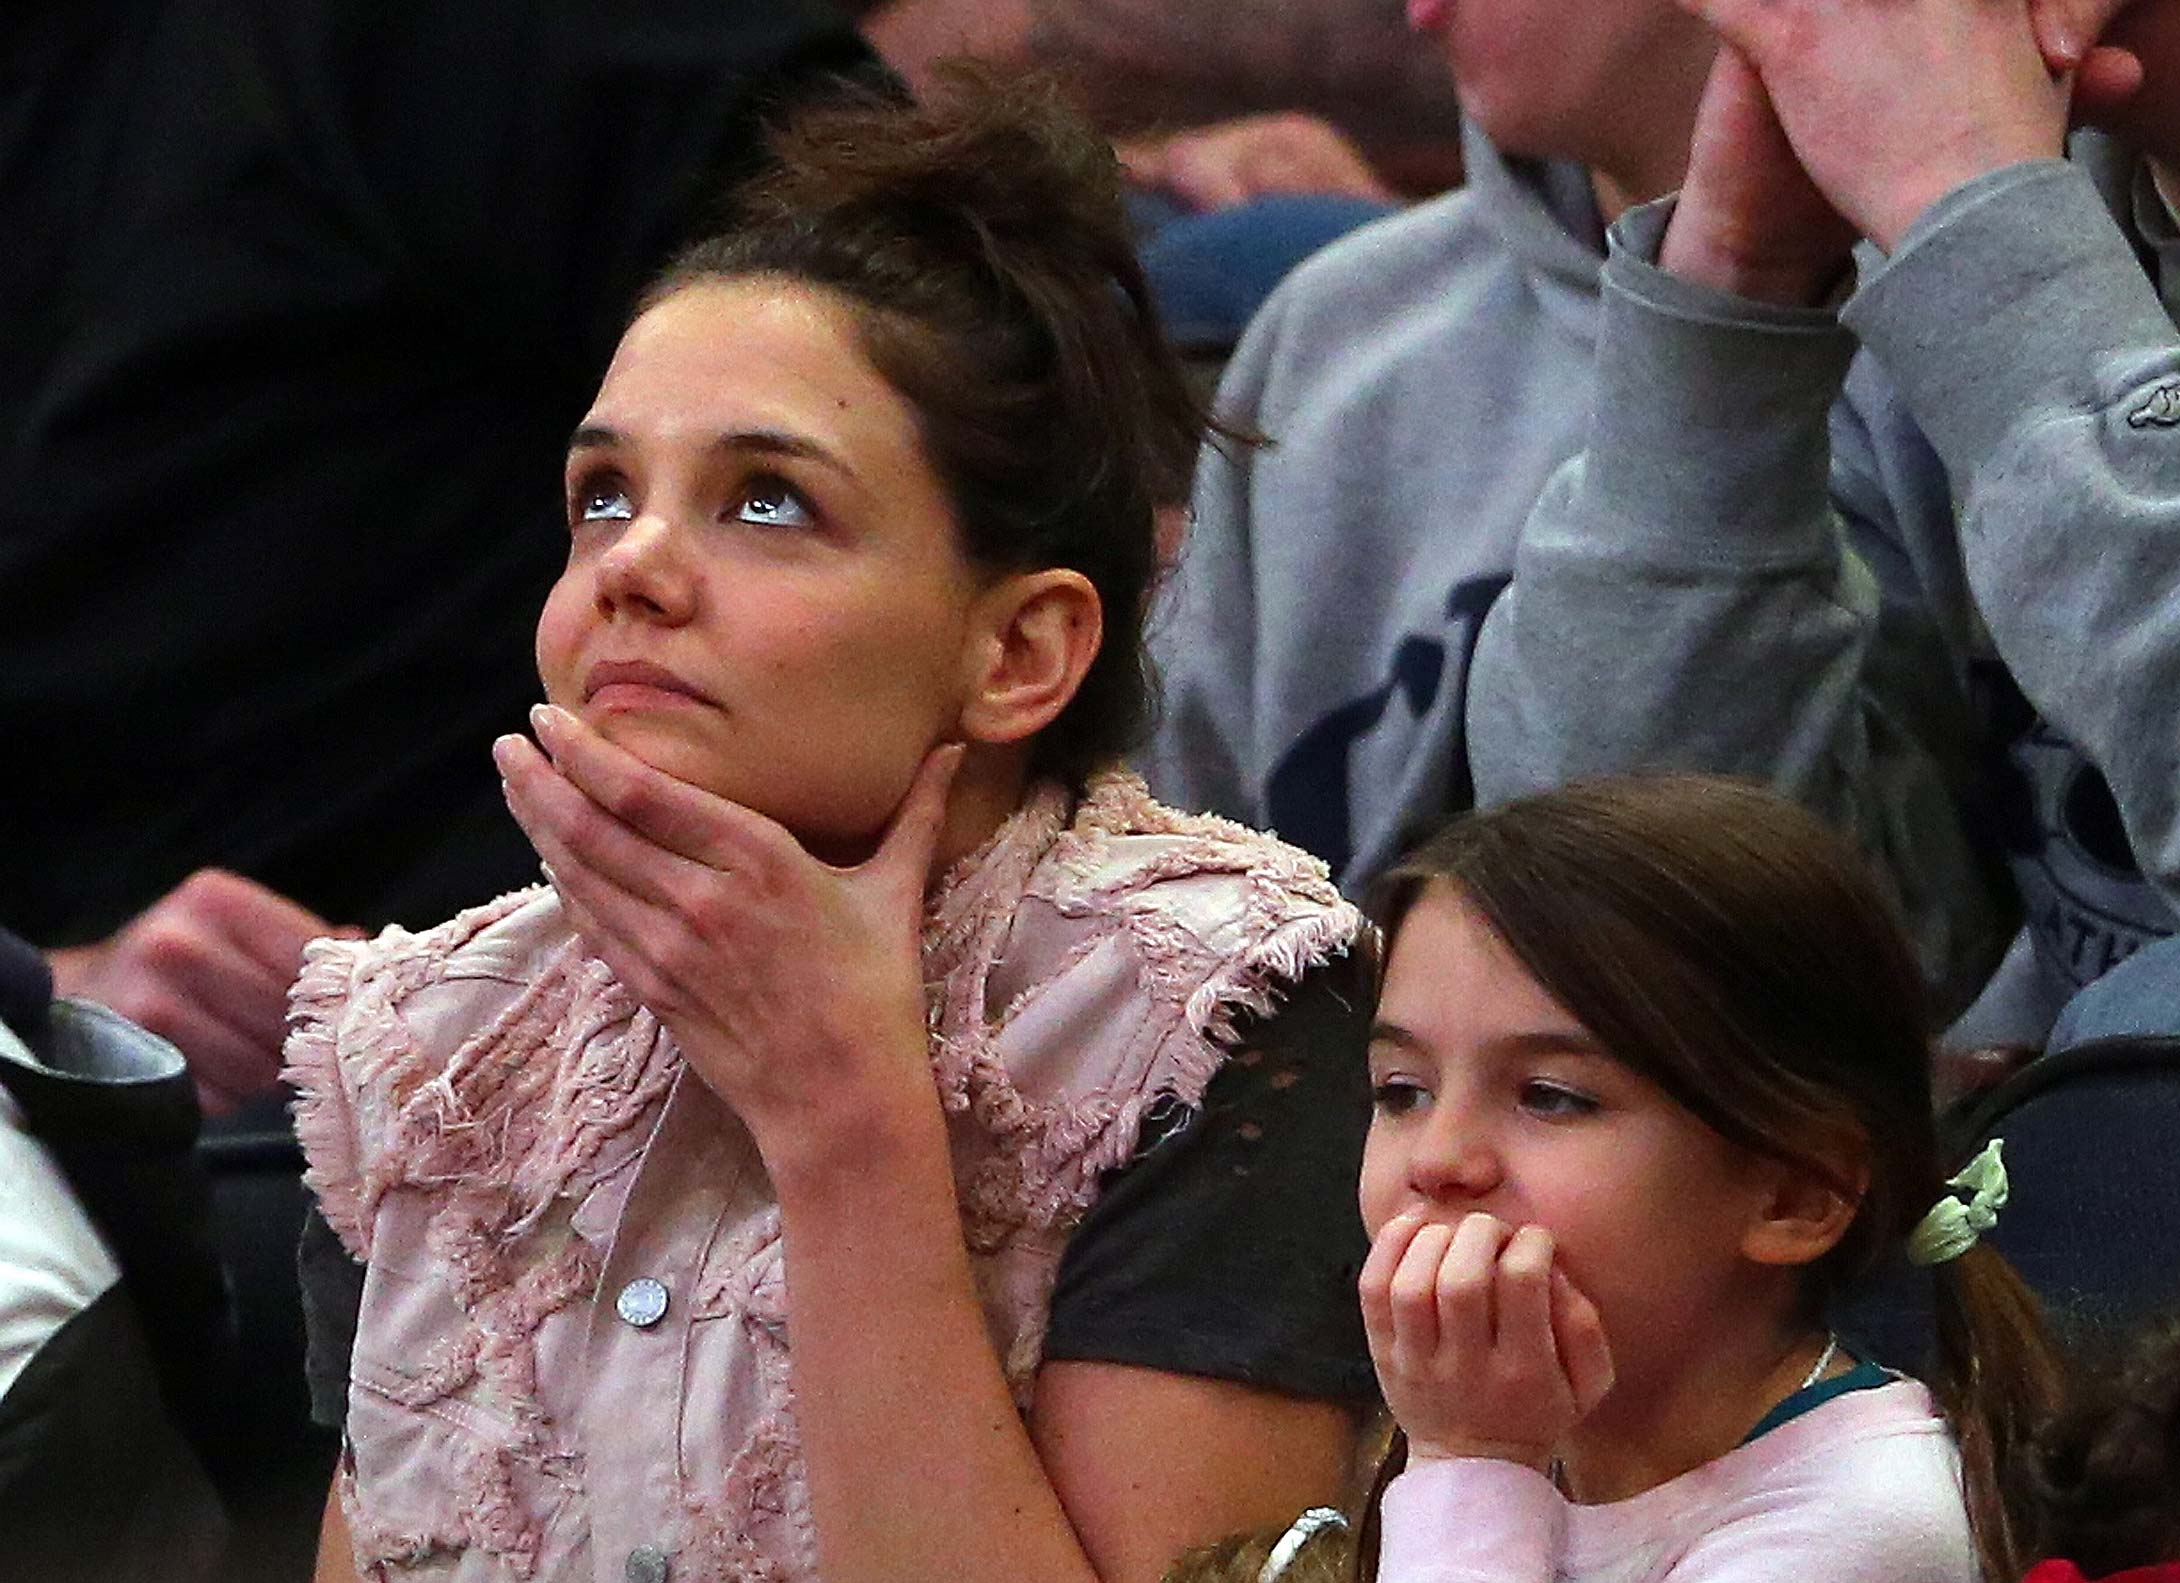 Katie Holmes and her daughter Suri Cruise attend the 2014 East Regional Final between the Connecticut Huskies and the Michigan State Spartans at Madison Square Garden.